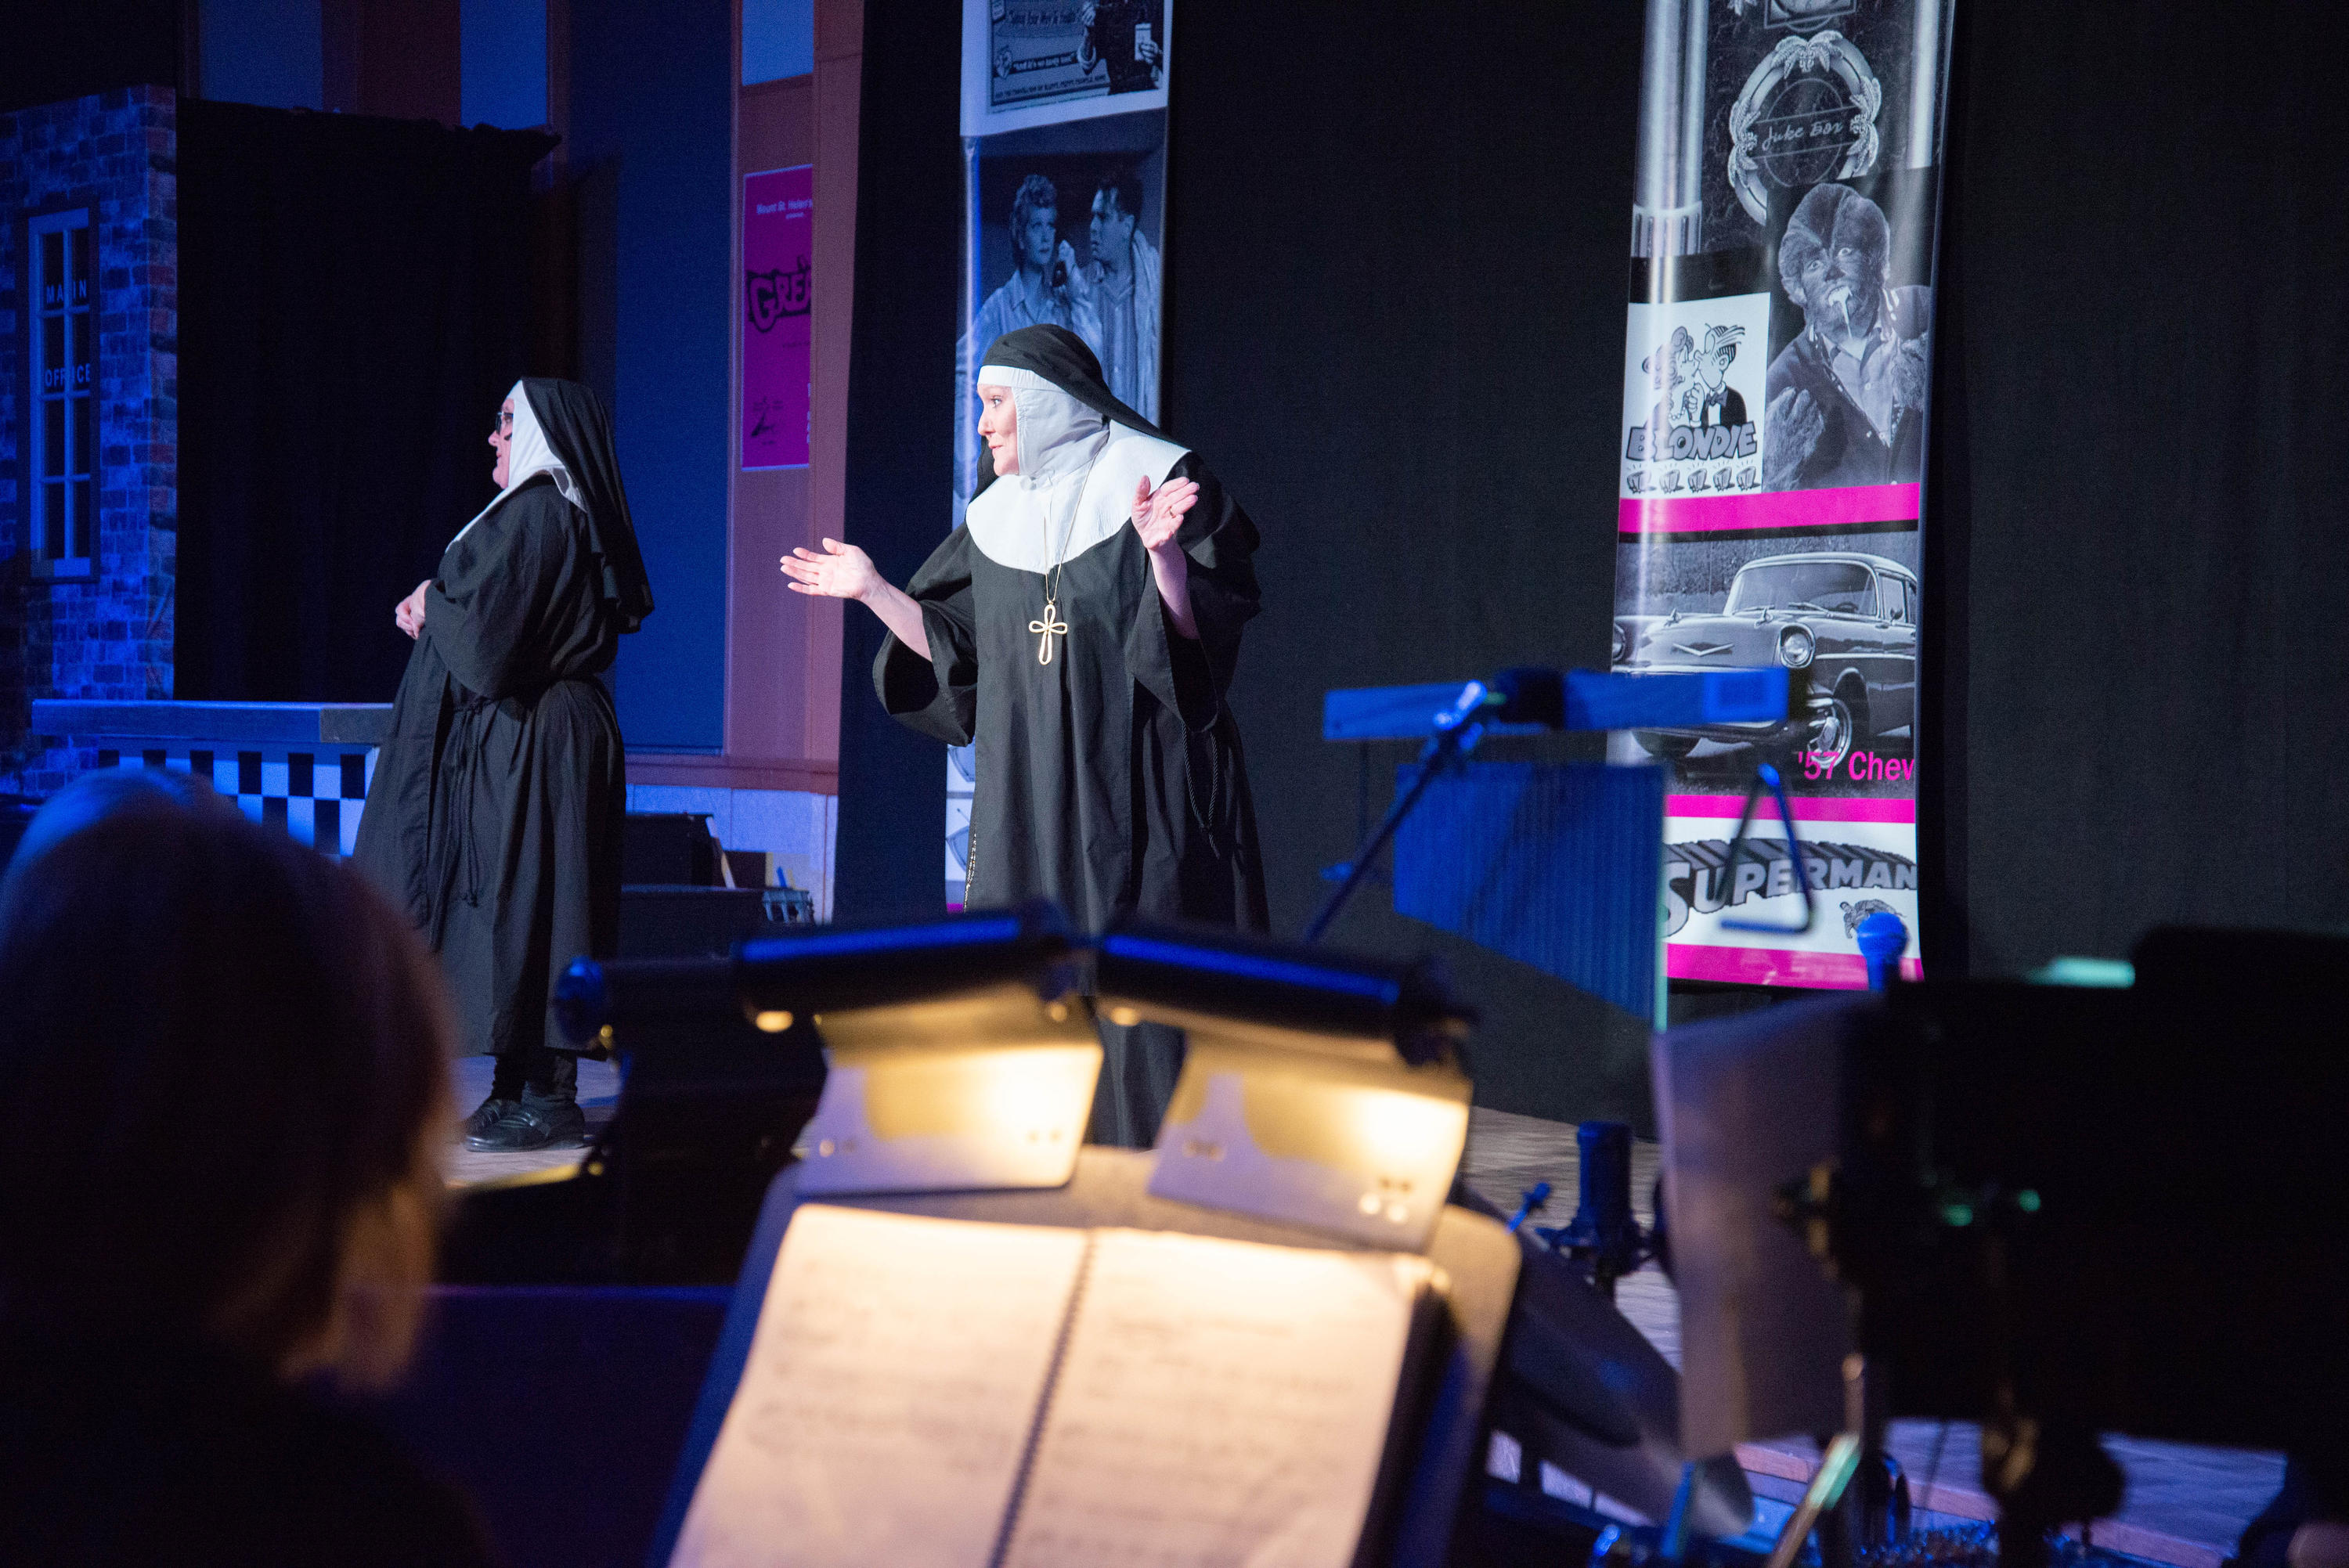 A nun sings on stage with a musician in the foreground